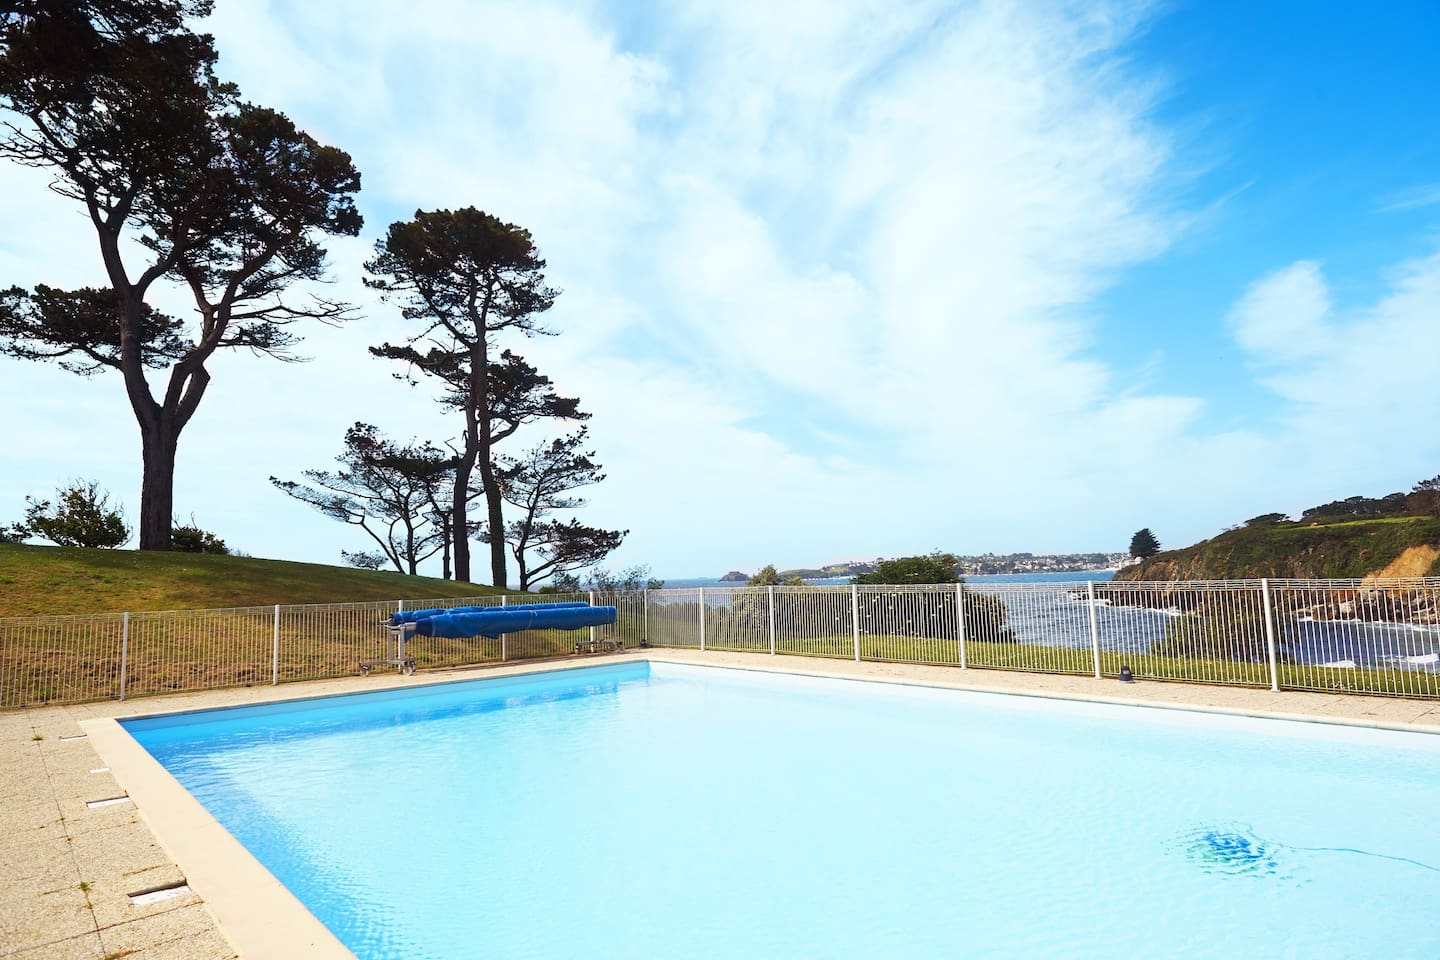 You will love to cool off in the gorgeous, seasonal outdoor pool.